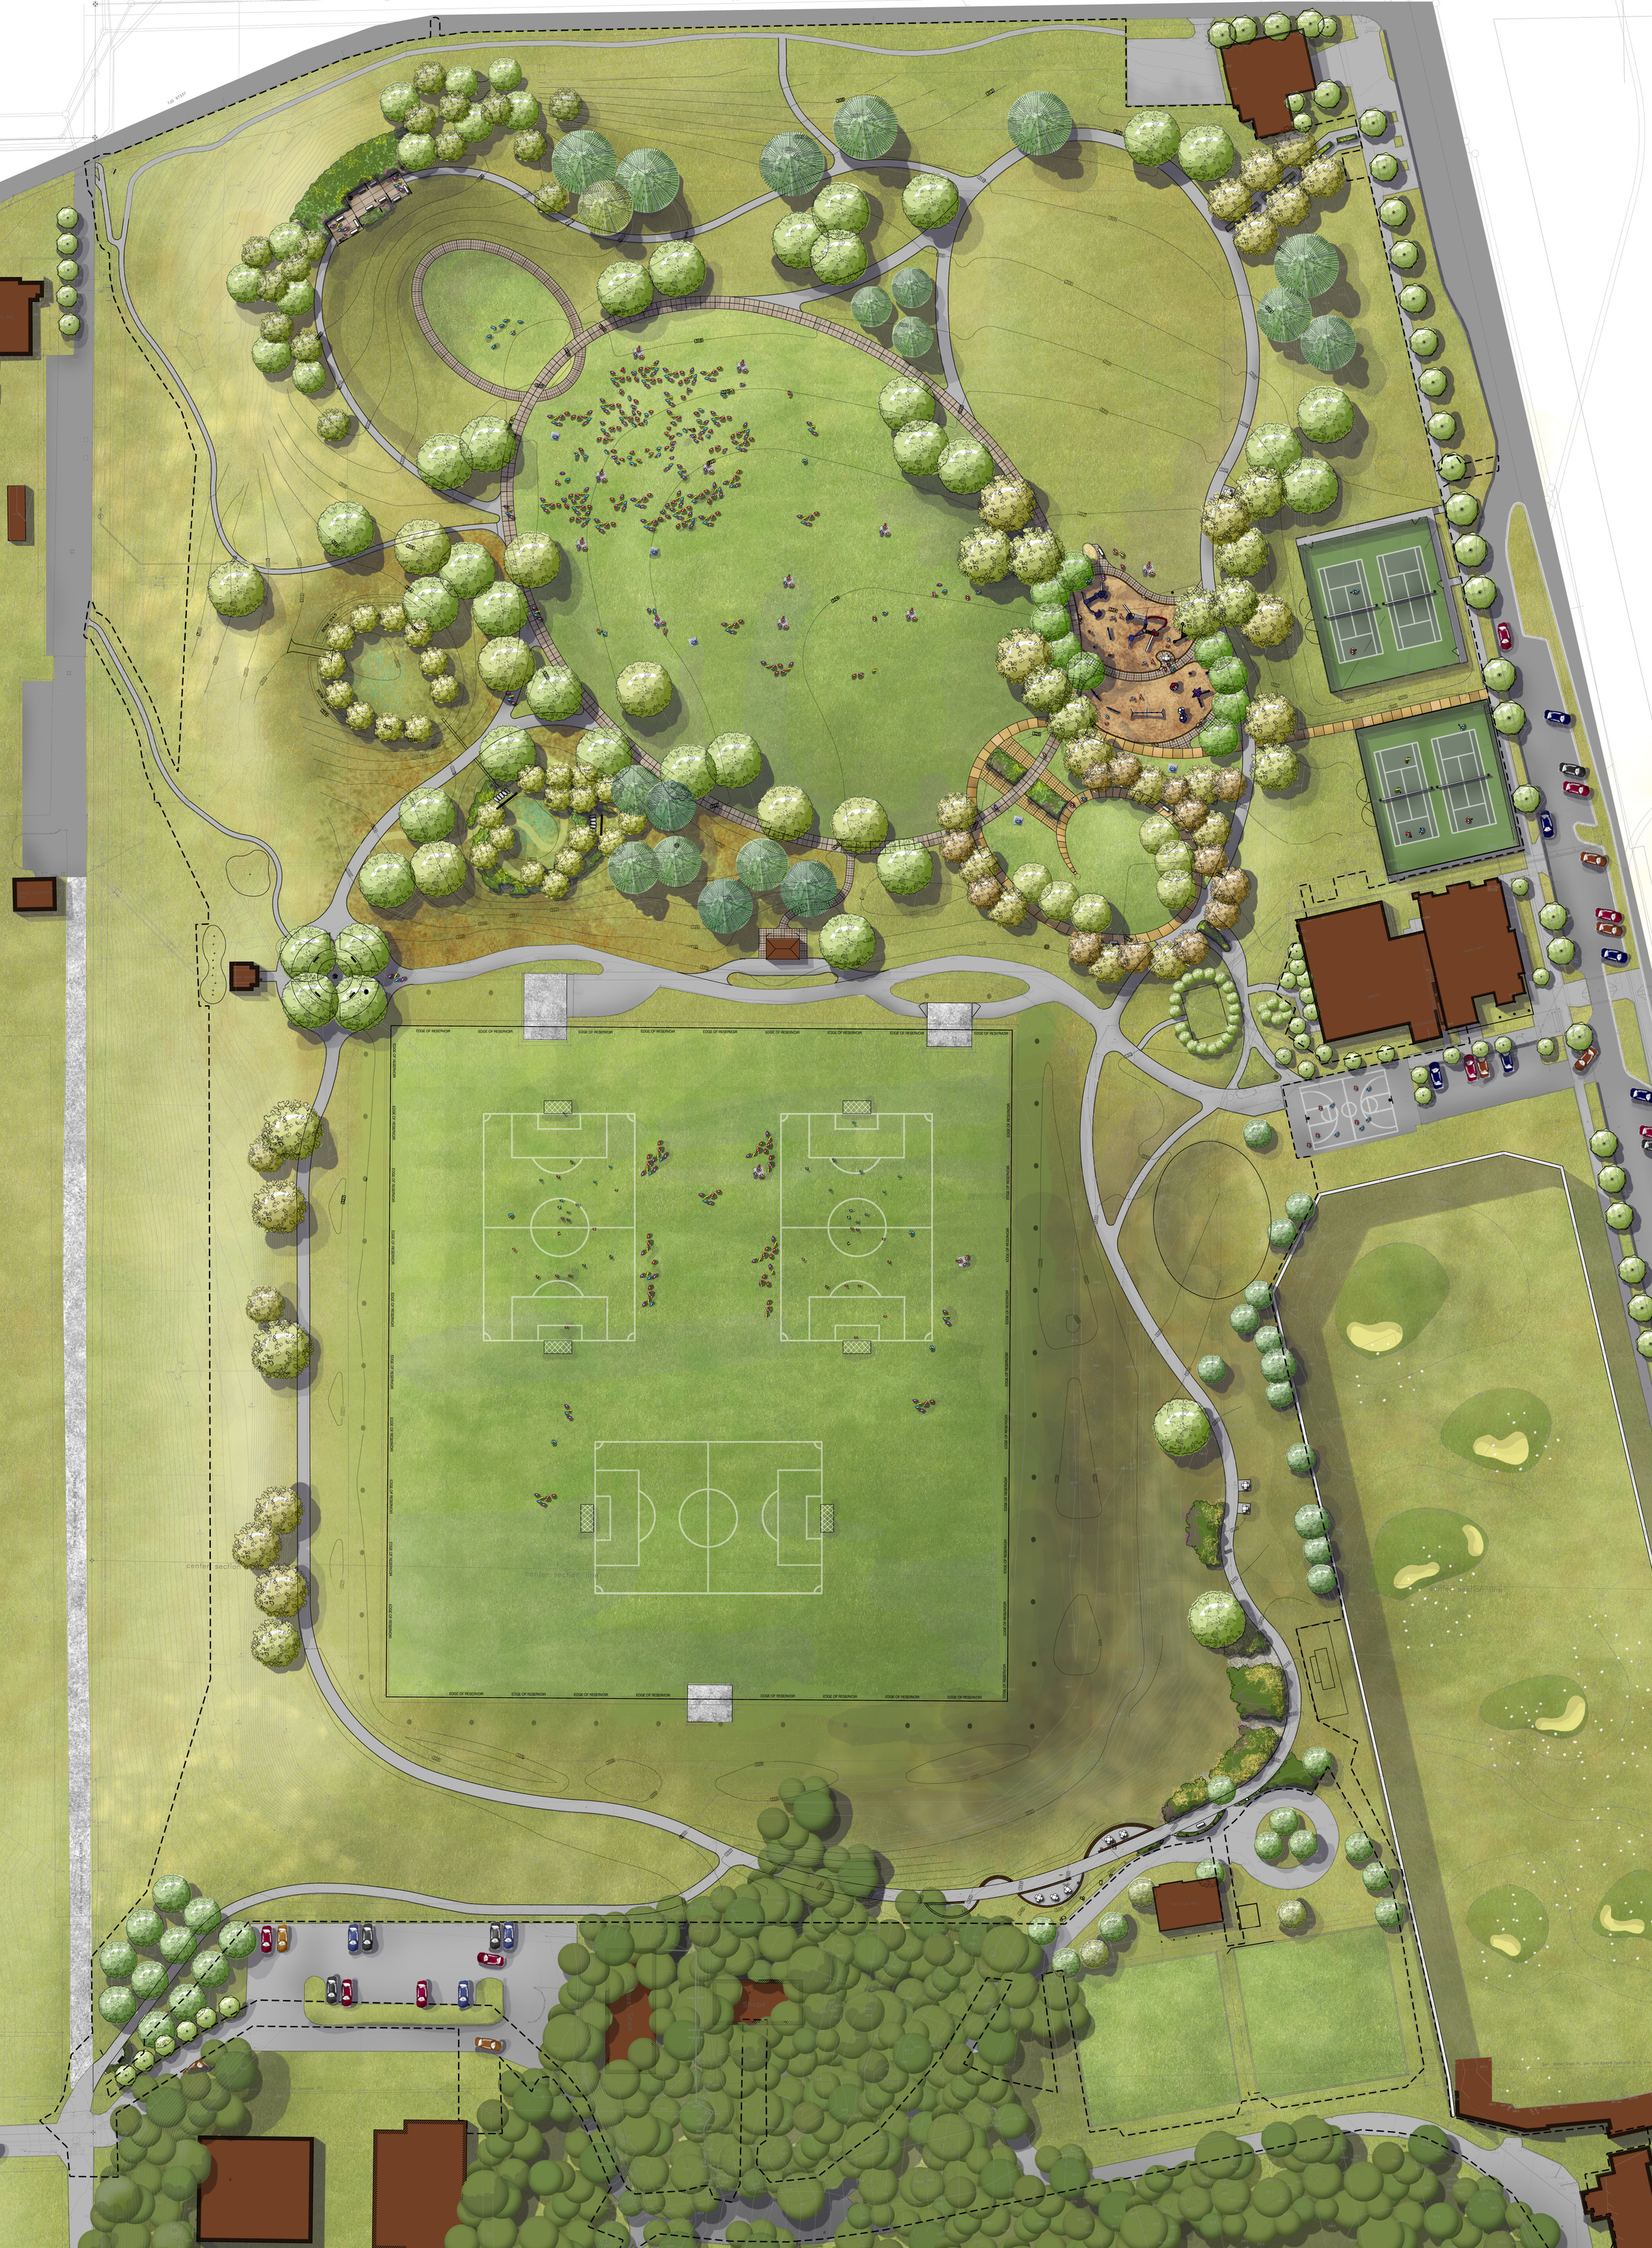 Jefferson Park Updated Rendering (cropped).jpg